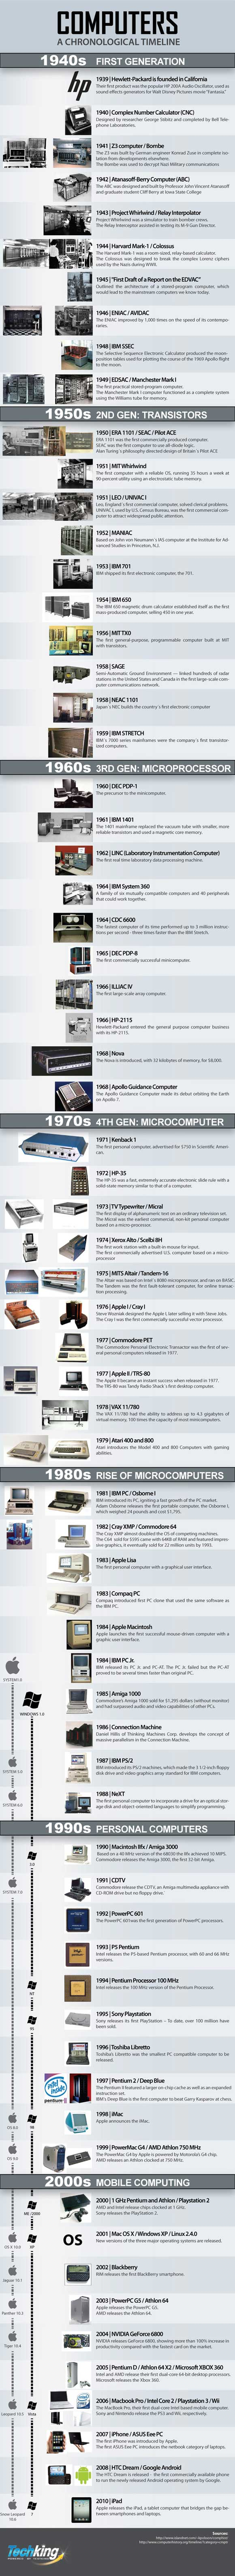 Infographic: A Comprehensive History of Computers